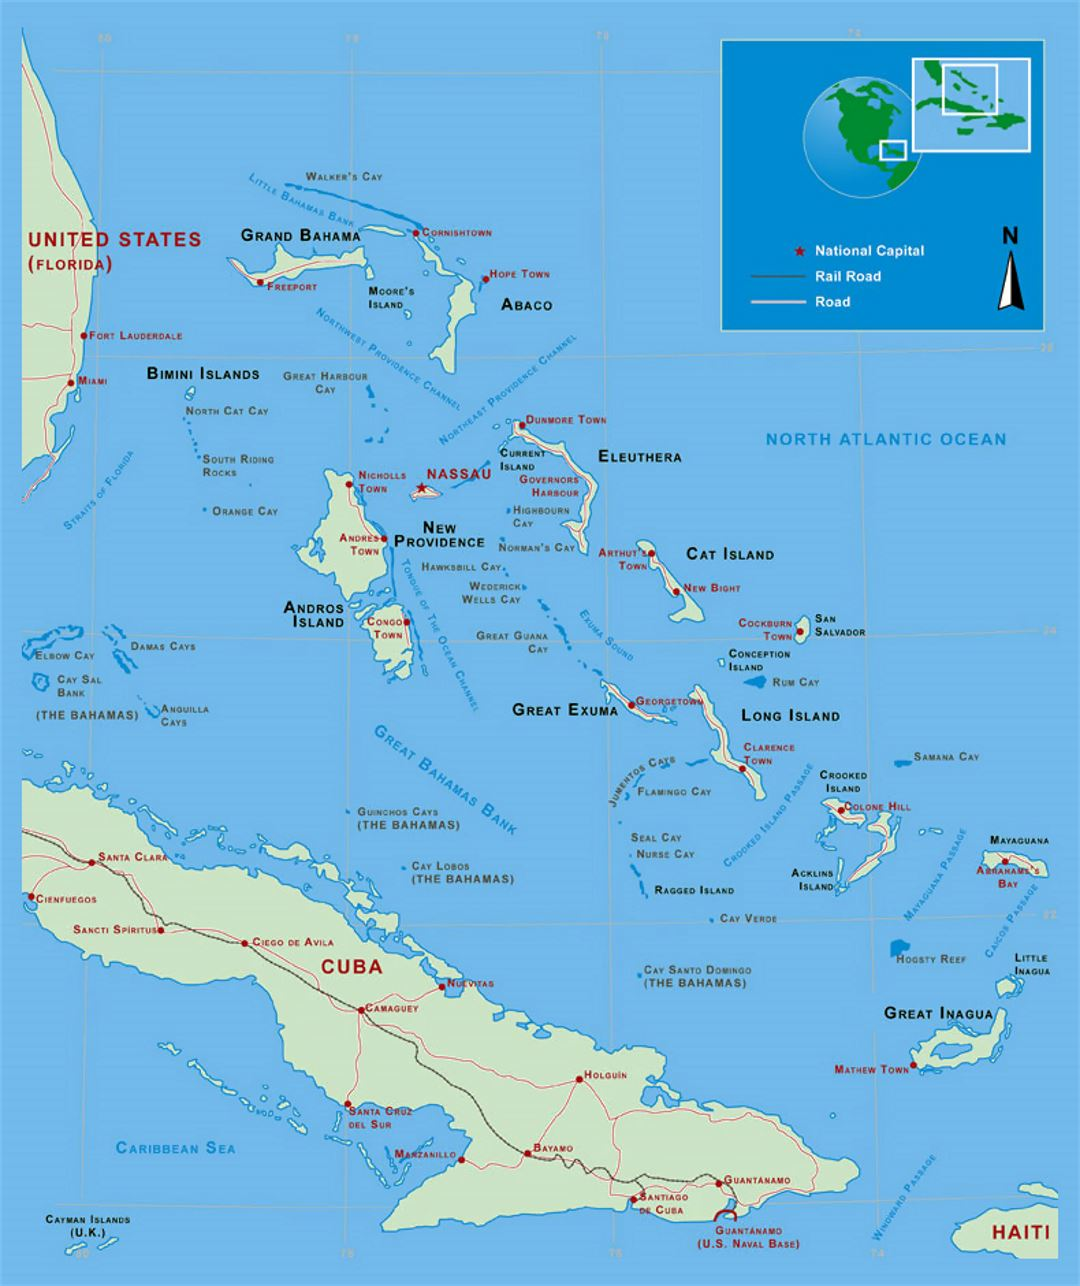 Detailed Political Map Of Bahamas With Roads Railroads And Major Cities